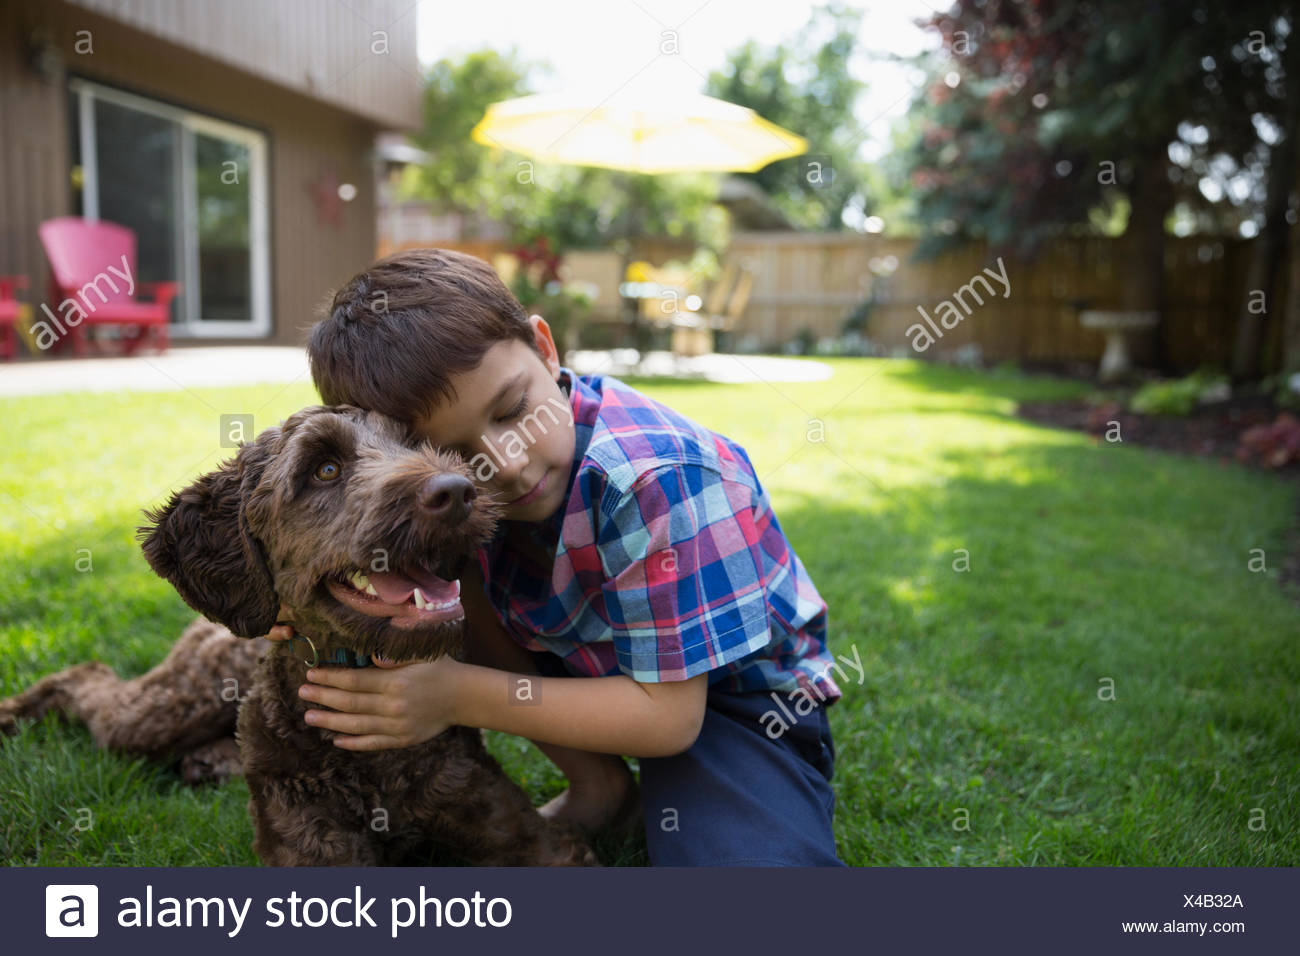 Affectueux boy hugging dog on lawn Photo Stock